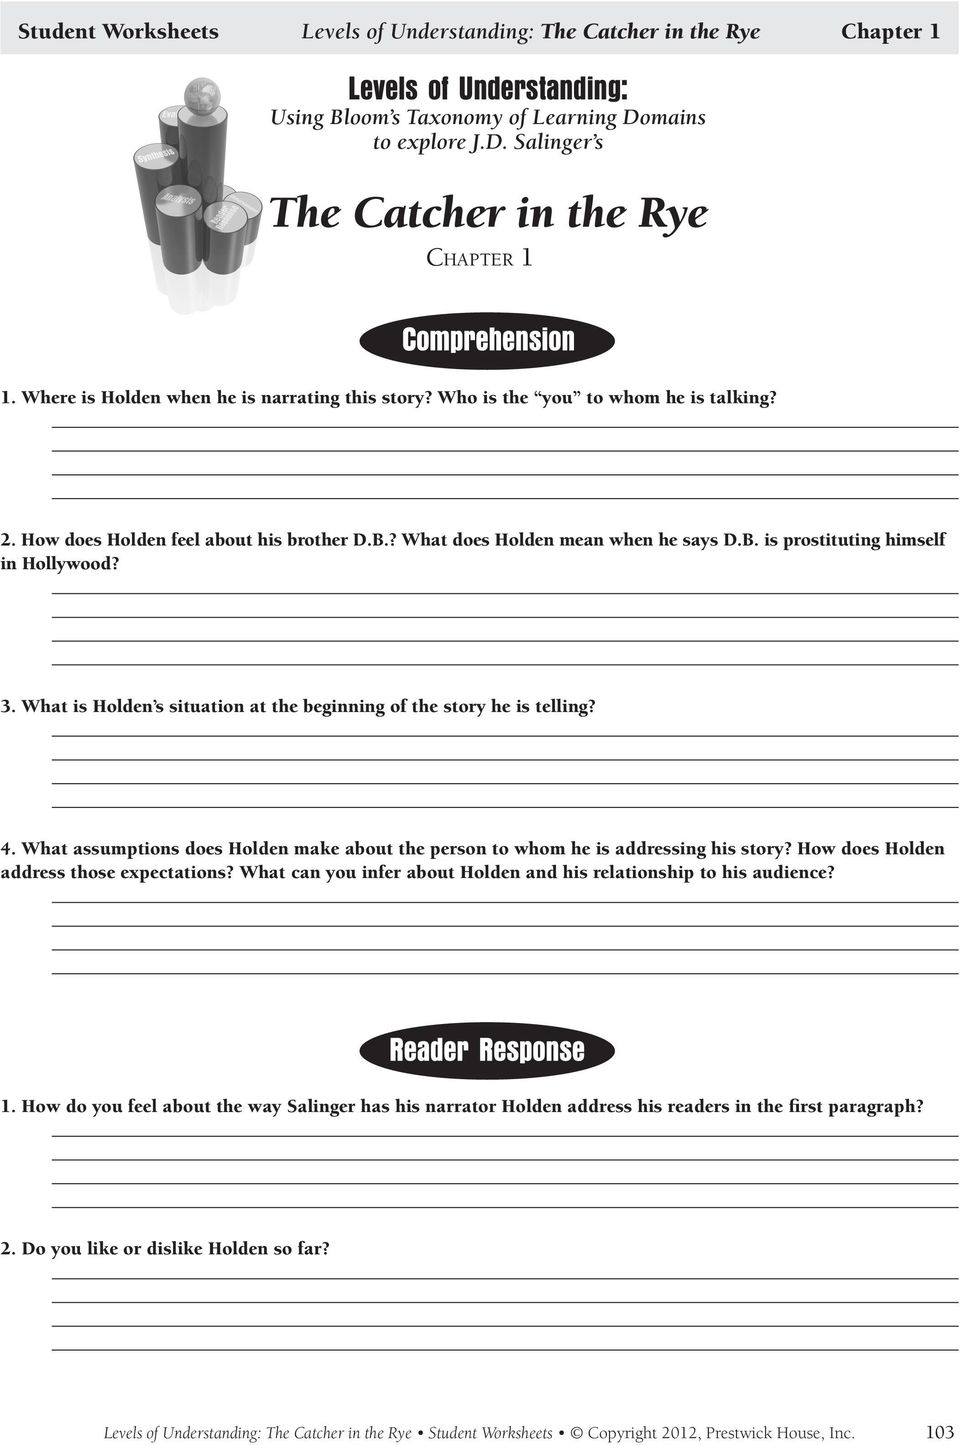 worksheet The Catcher In The Rye Worksheets understanding the catcher in rye by j d salinger pdf what is holden s situation at beginning of story he telling